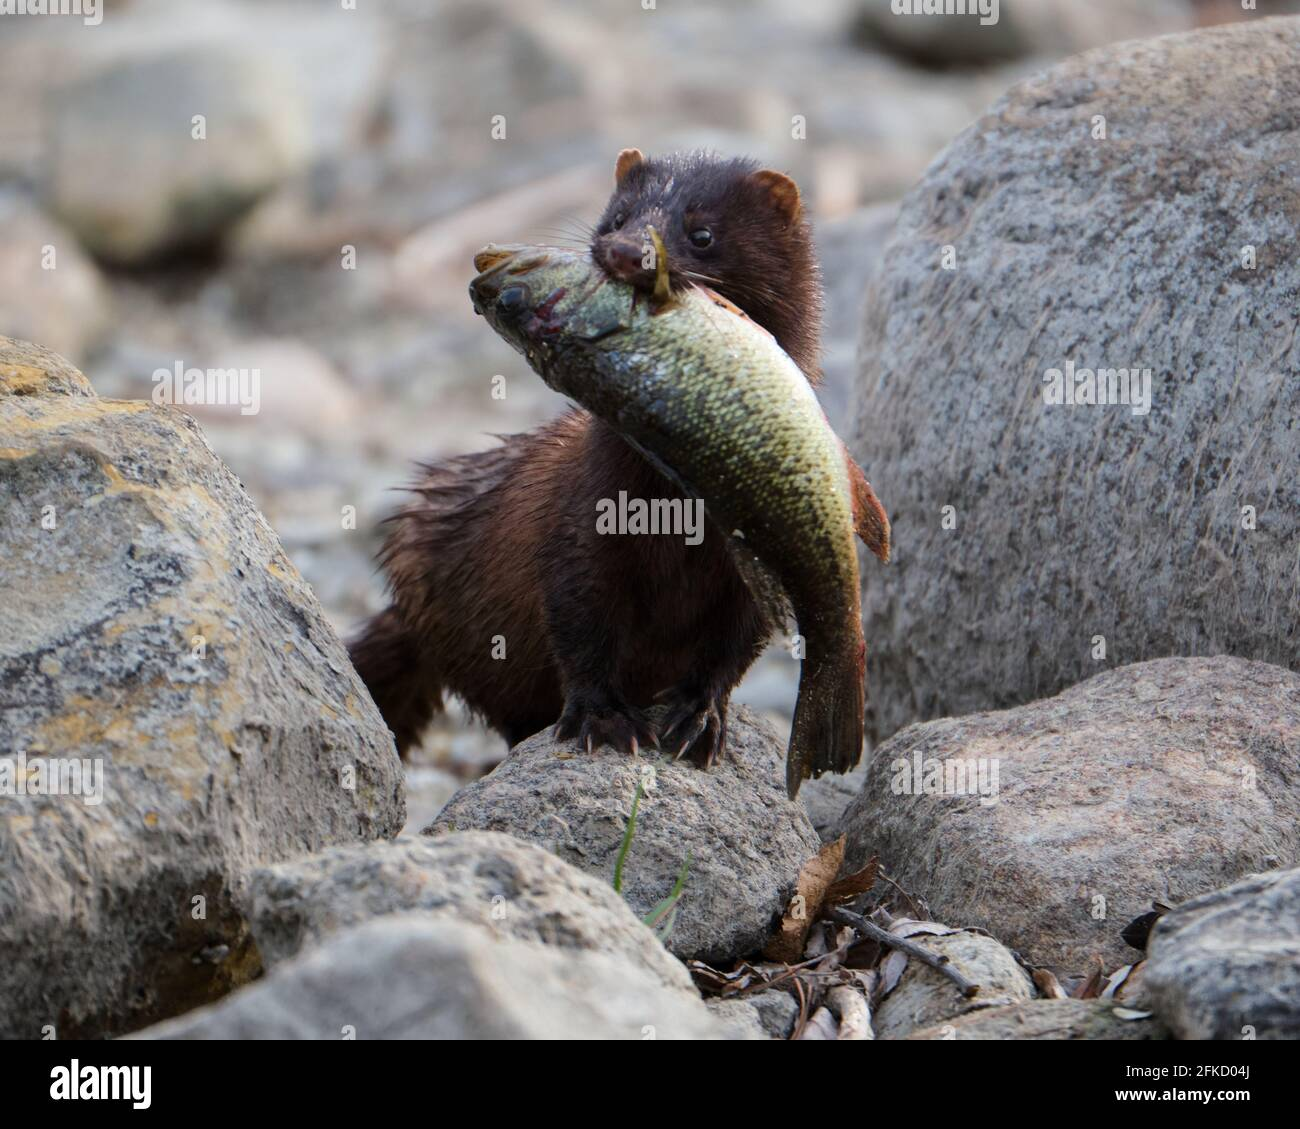 an-american-mink-coming-out-of-the-rideau-canal-with-a-fish-in-its-mouth-2FKD04J.jpg